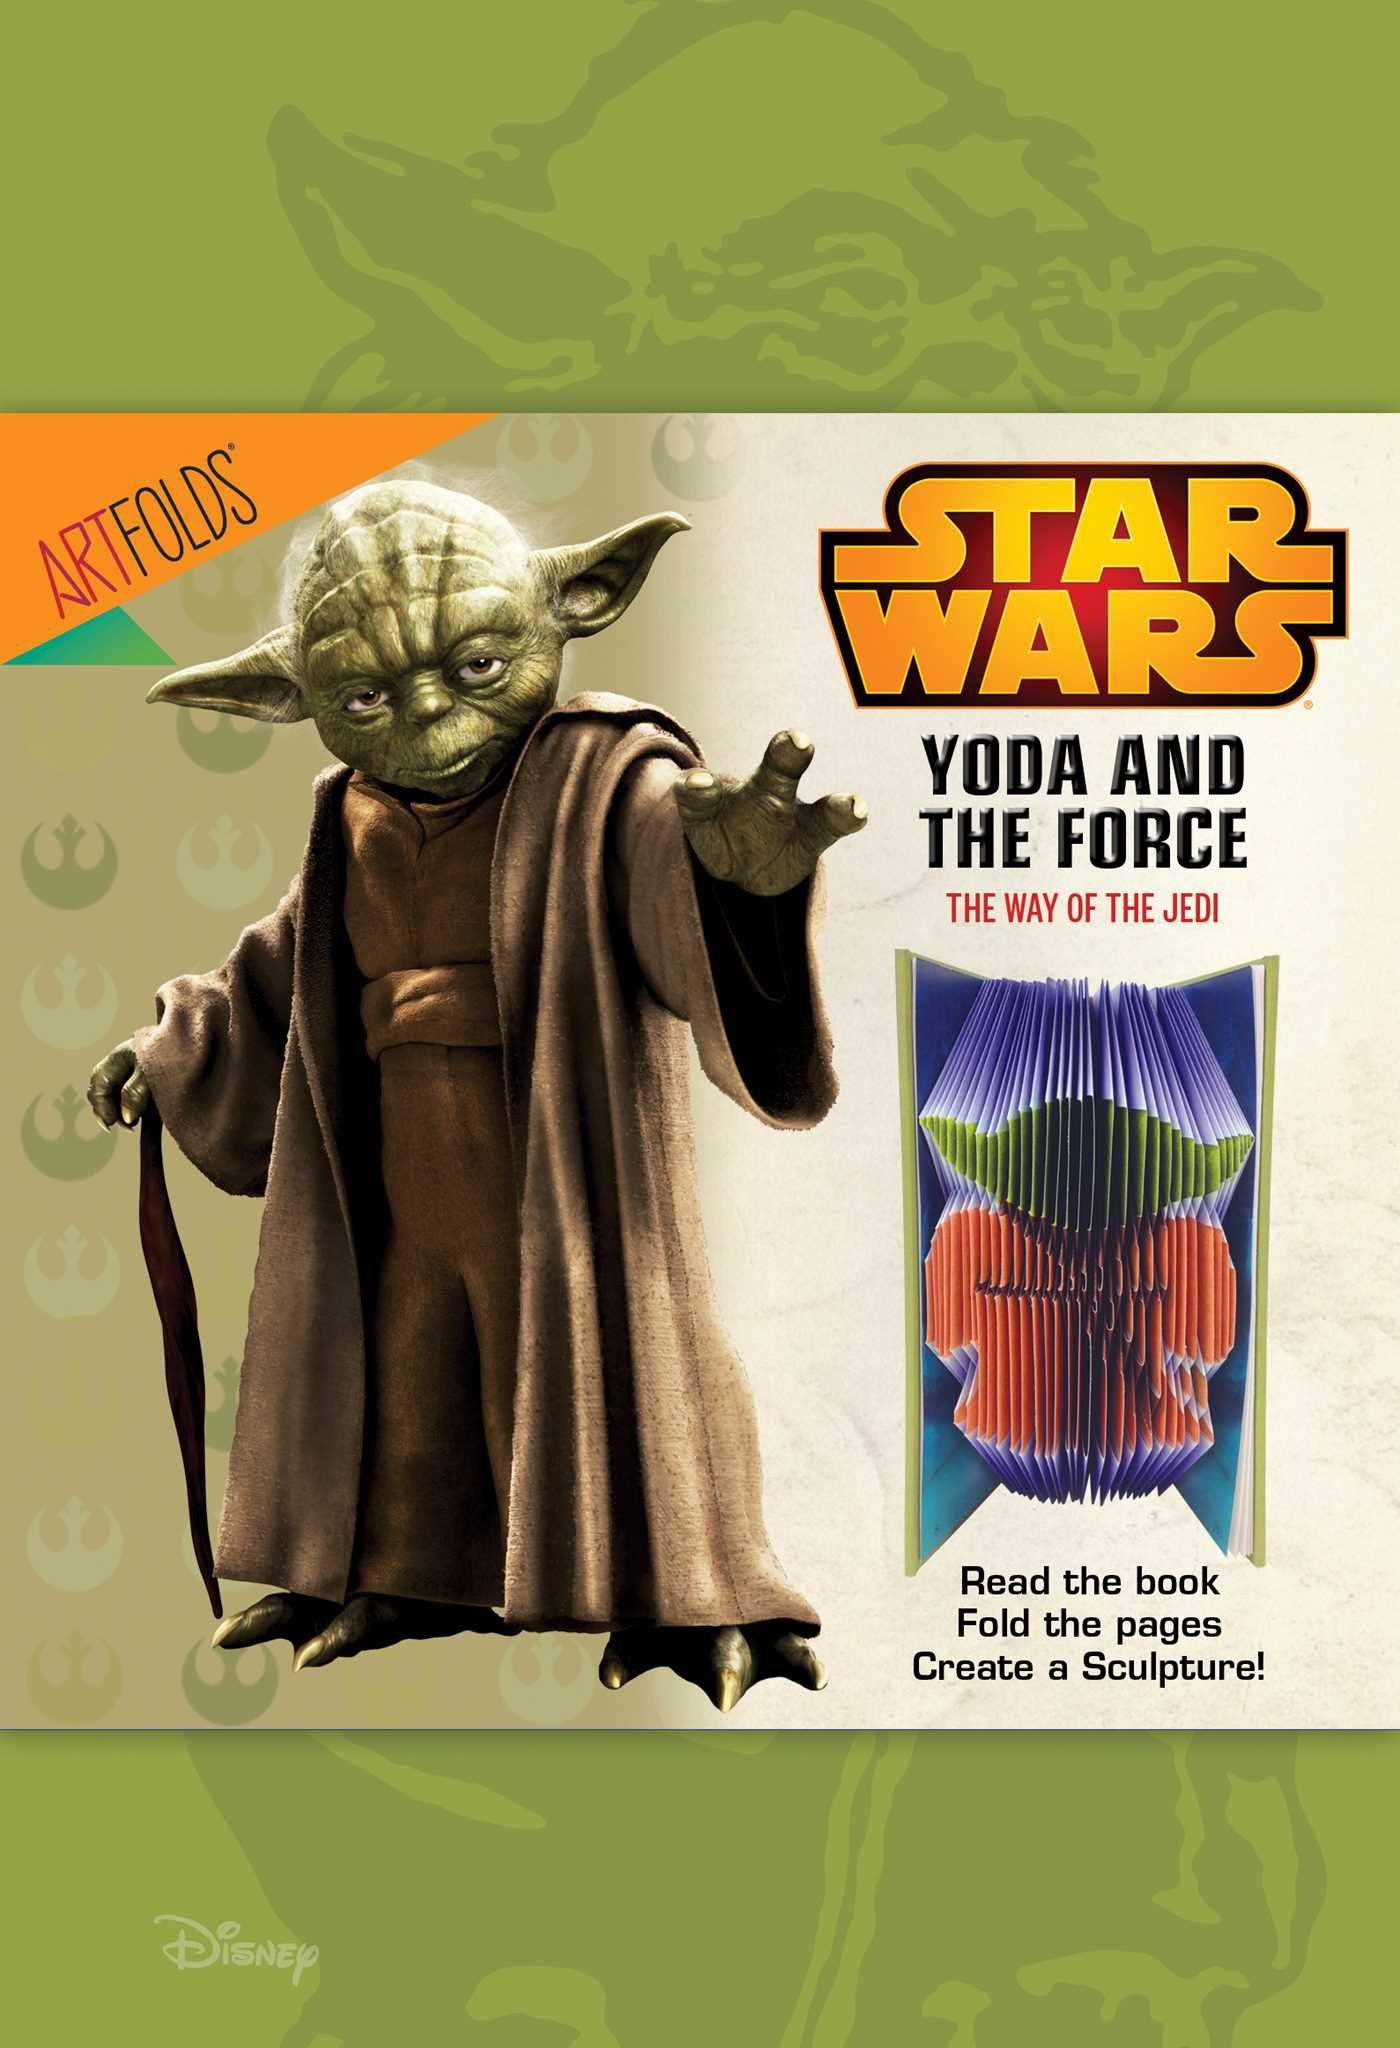 Star Wars Art Folds: Yoda and the Force, the Way of the Jedi